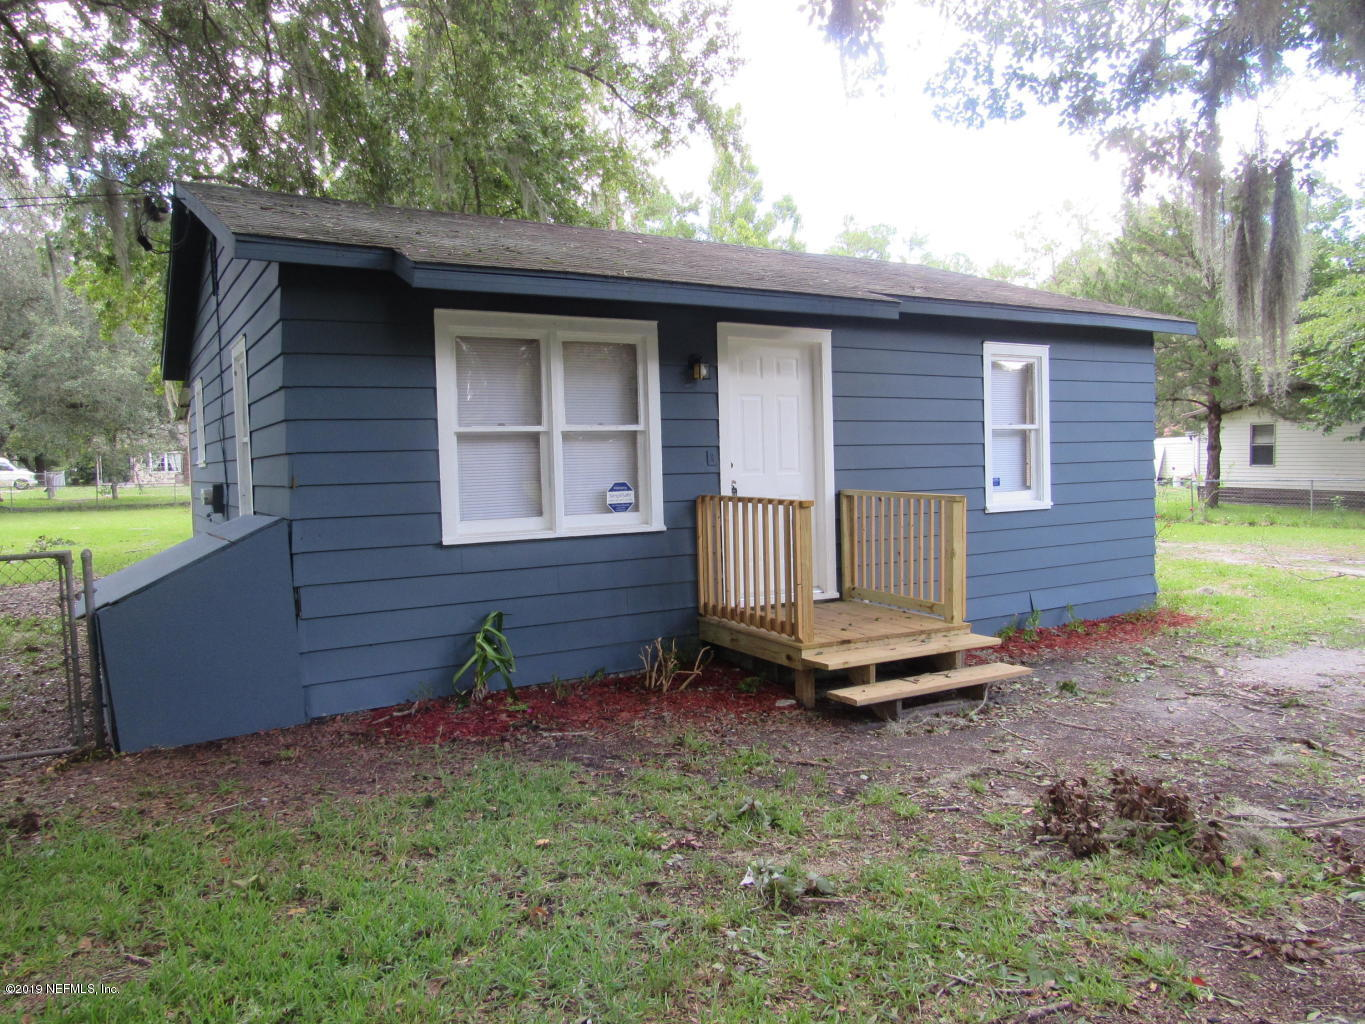 6965 DUNN, JACKSONVILLE, FLORIDA 32219, 2 Bedrooms Bedrooms, ,1 BathroomBathrooms,Commercial,For sale,DUNN,985028